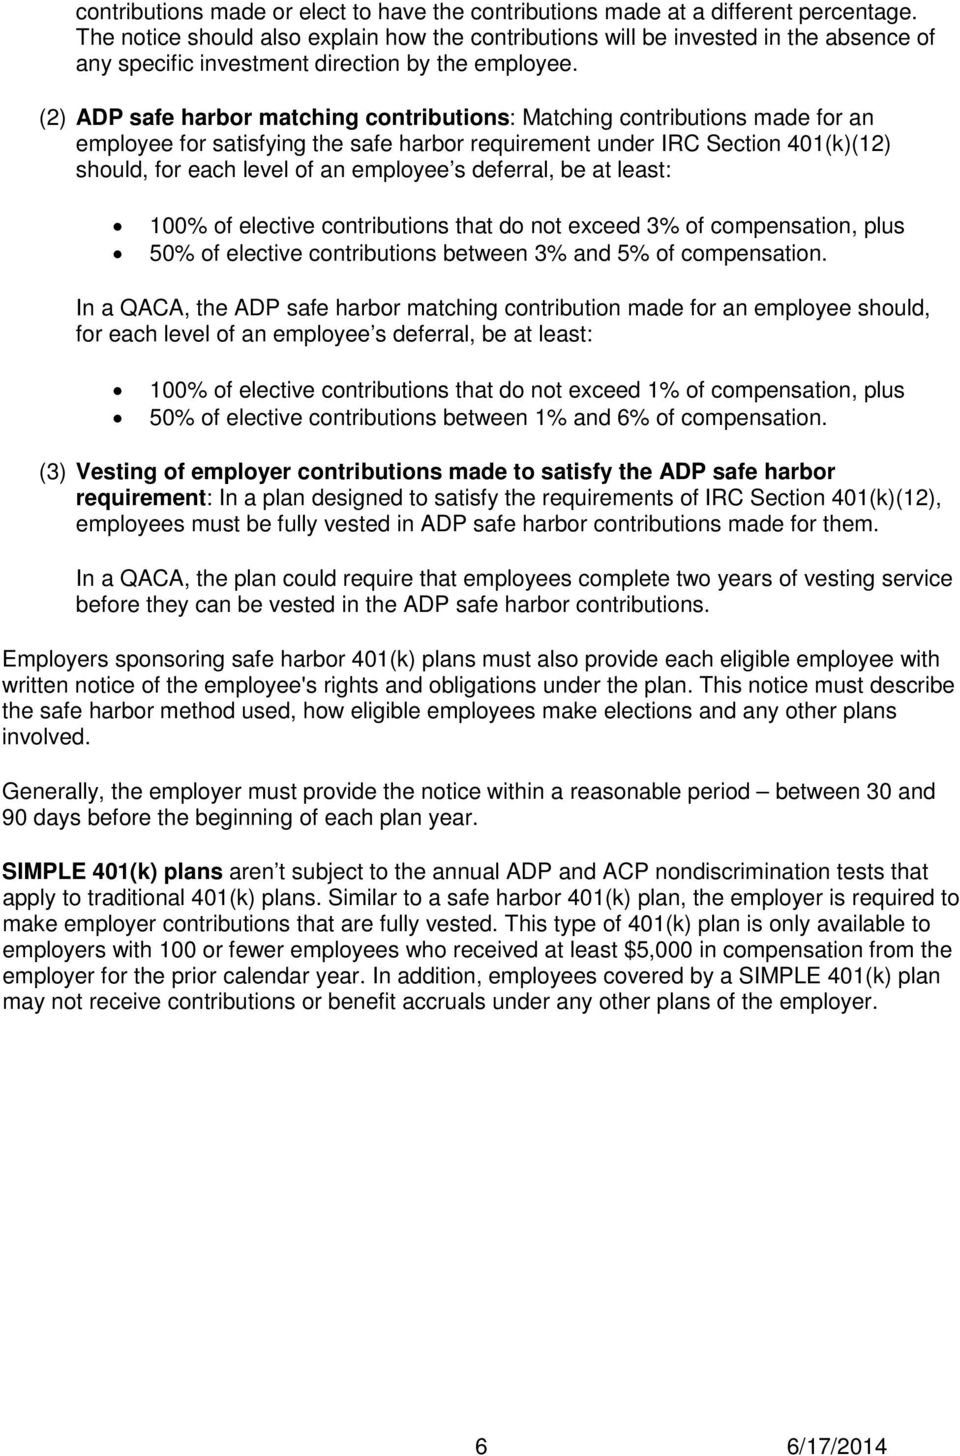 (2) ADP safe harbor matching contributions: Matching contributions made for an employee for satisfying the safe harbor requirement under IRC Section 401(k)(12) should, for each level of an employee s